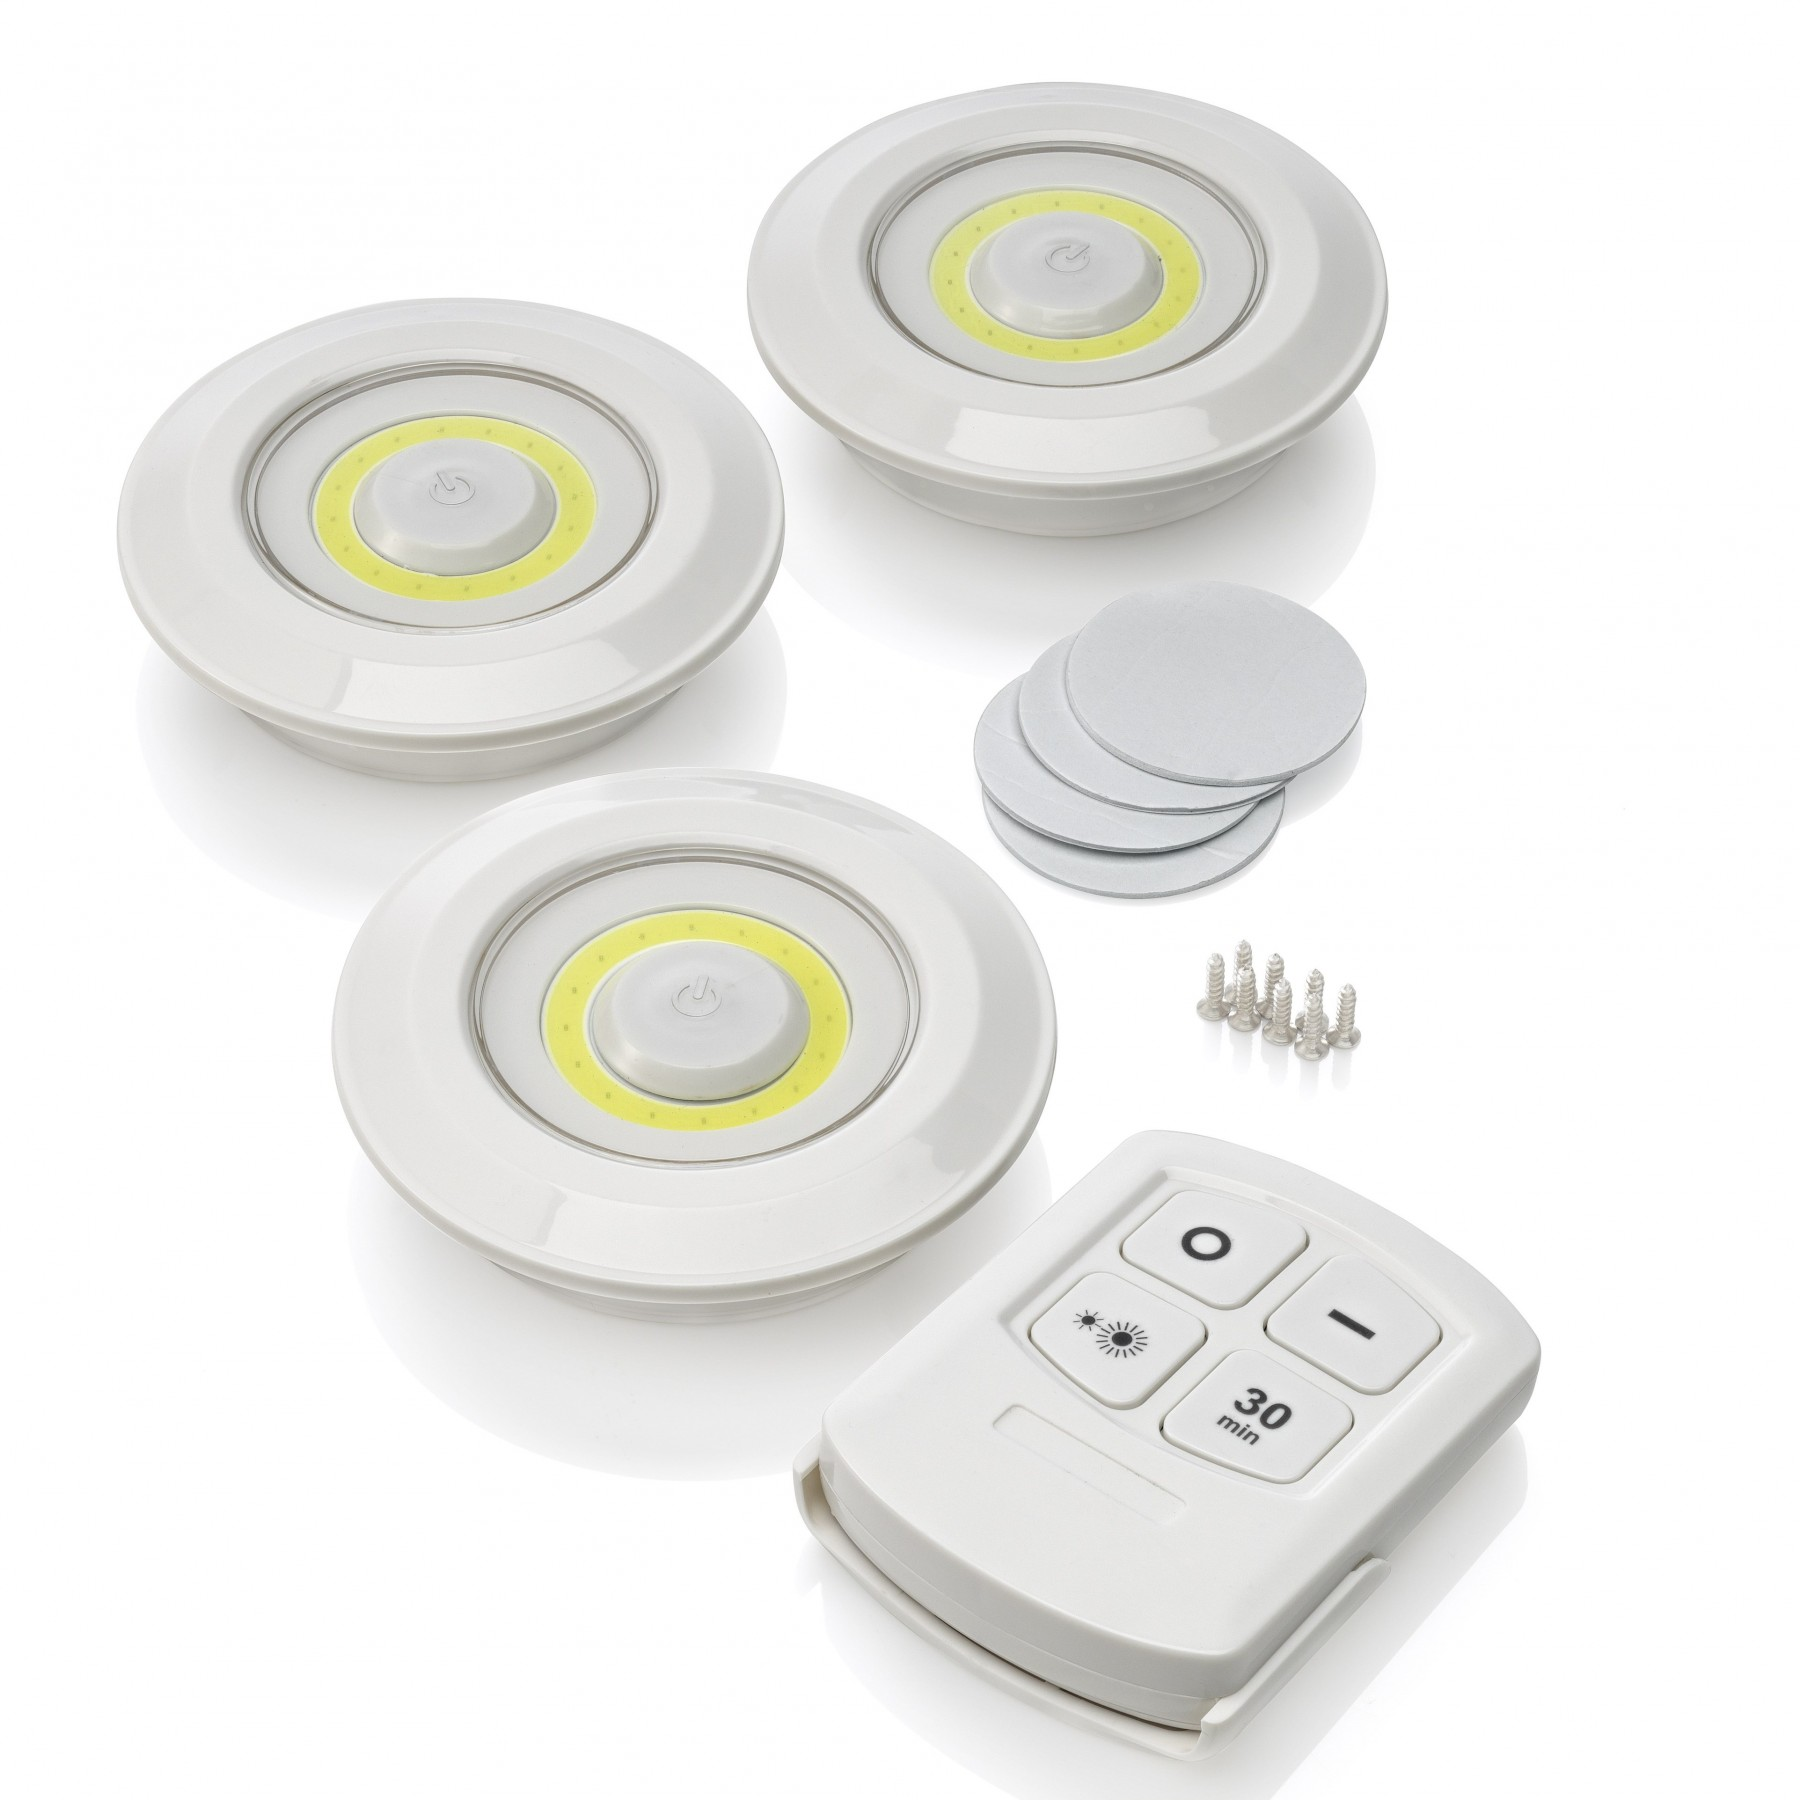 Auraglow Remote Controlled Wireless Under Cabinet Led Lights 3 Pack